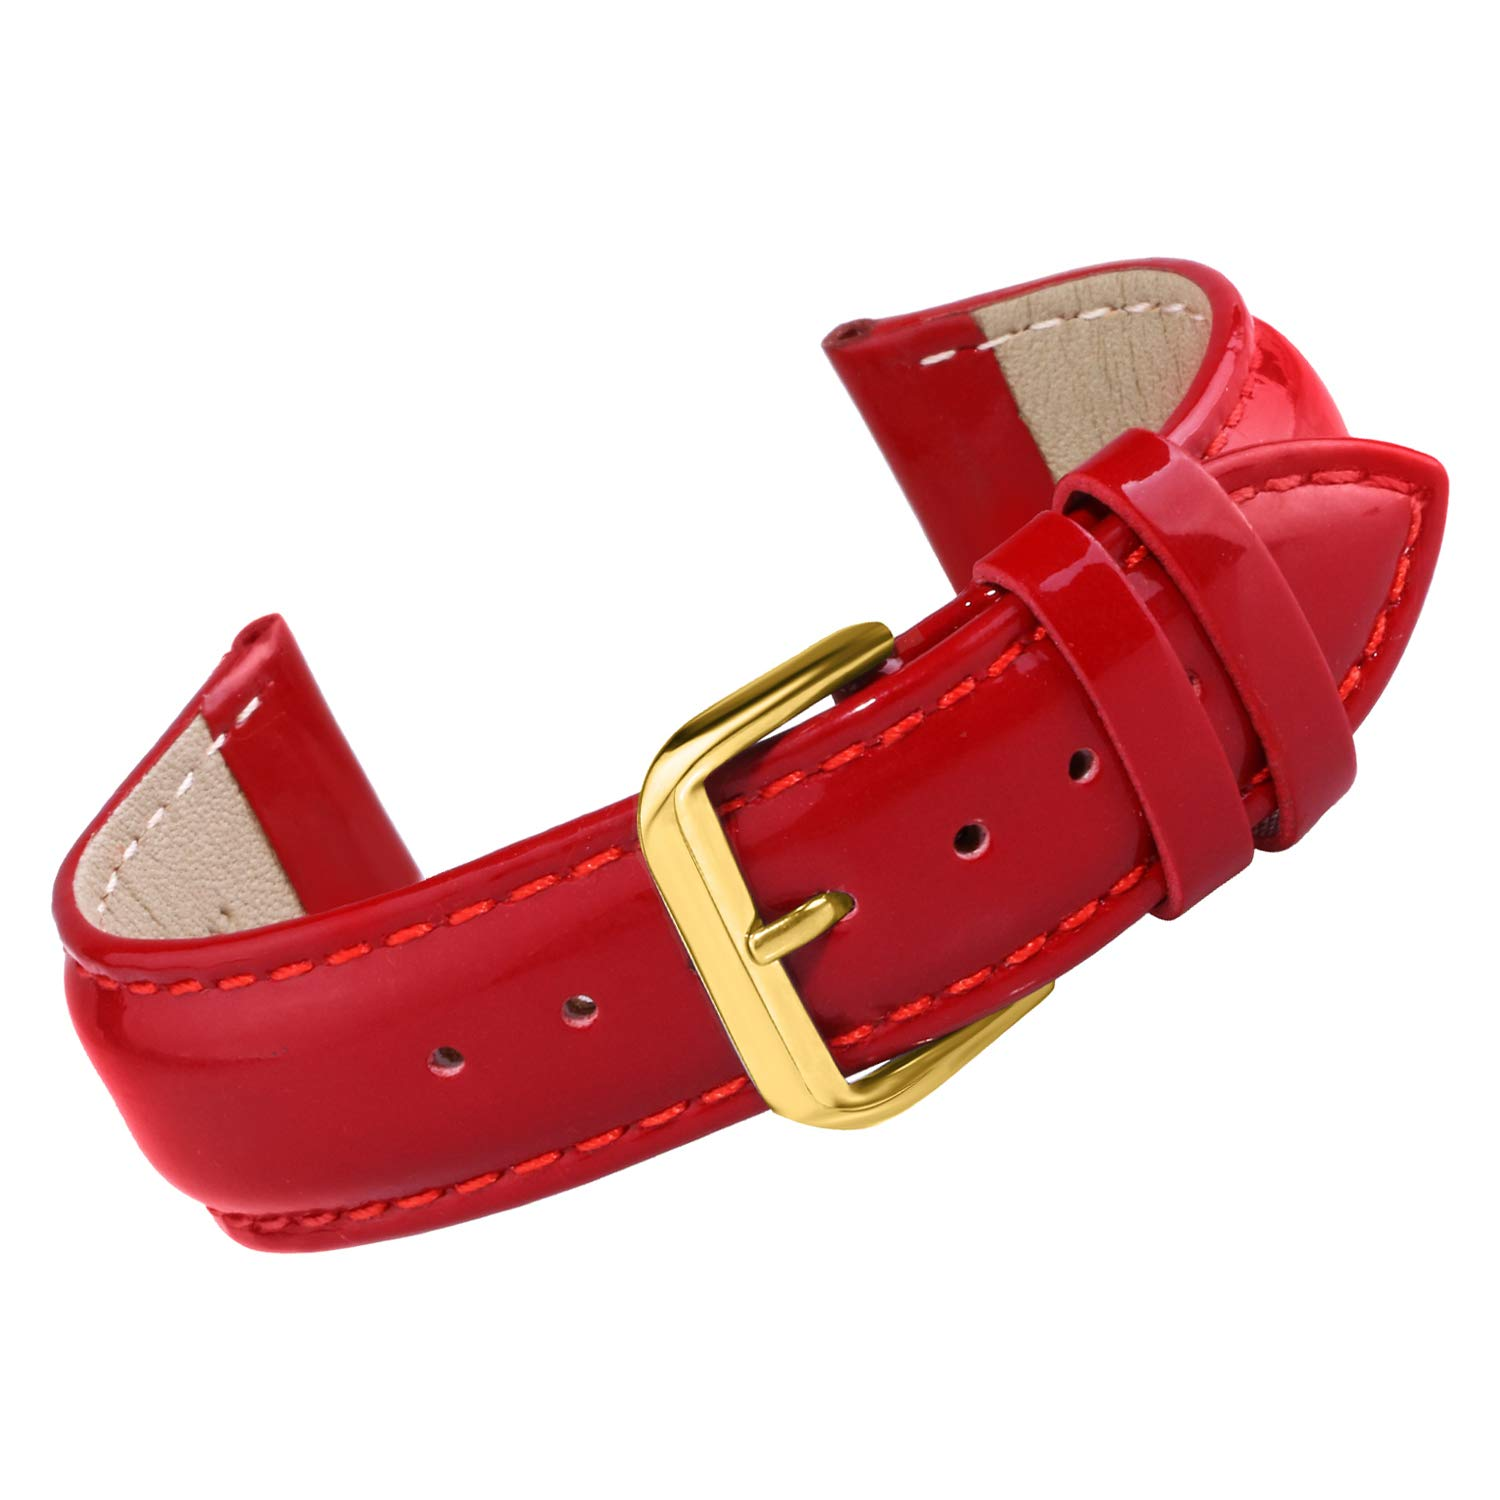 Watch Leather Band 18mm Watch Strap Genuine Leather Premium Deluxe Good by autulet